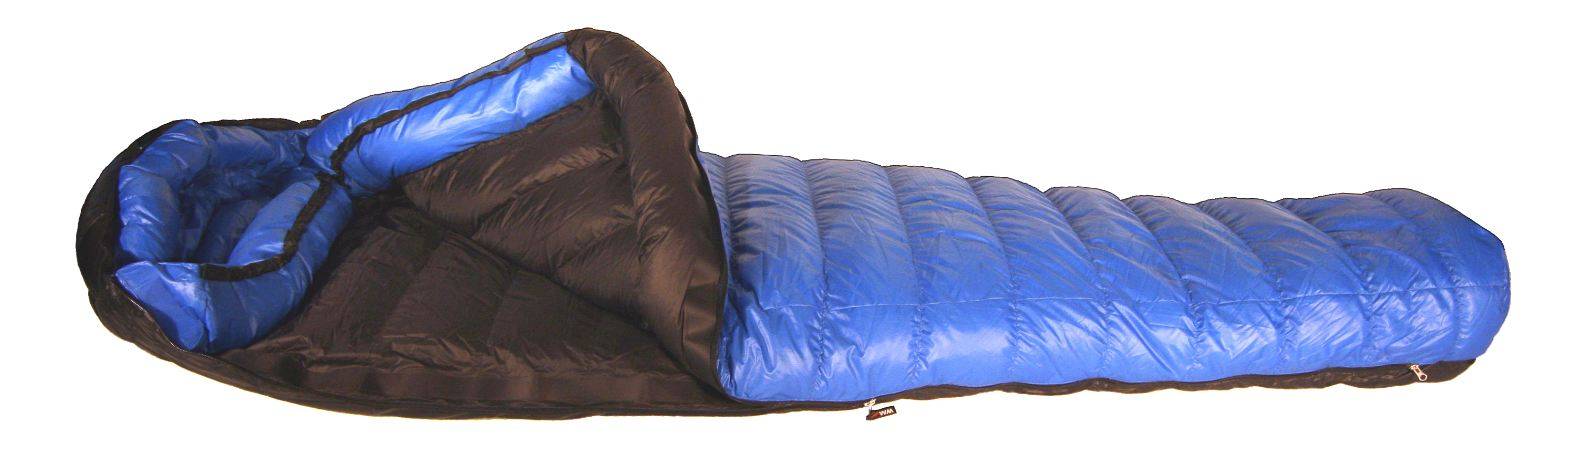 Three New Sleeping Bags; Nine Amazing Deals! #1, 74 kb